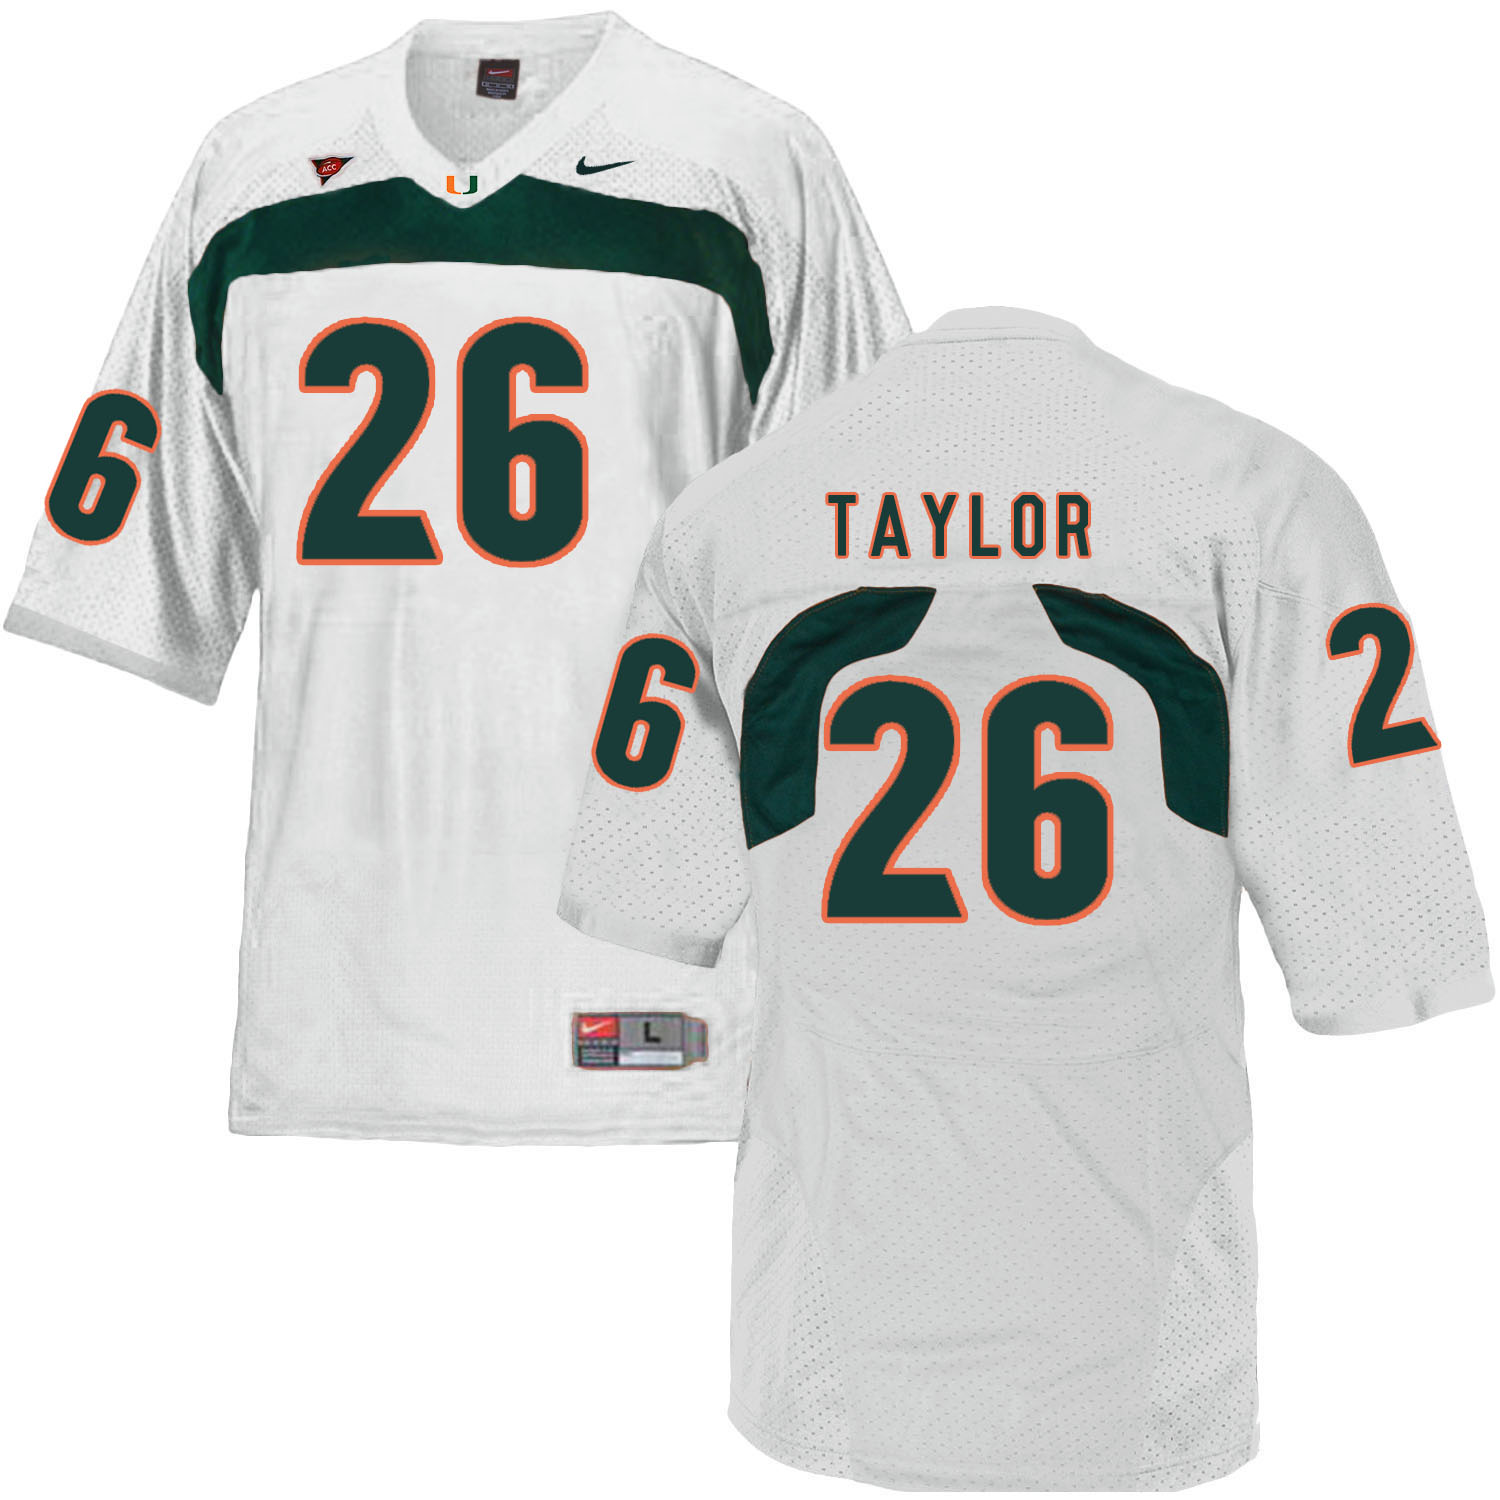 Miami Hurricanes 26 Sean Taylor White College Football Jersey